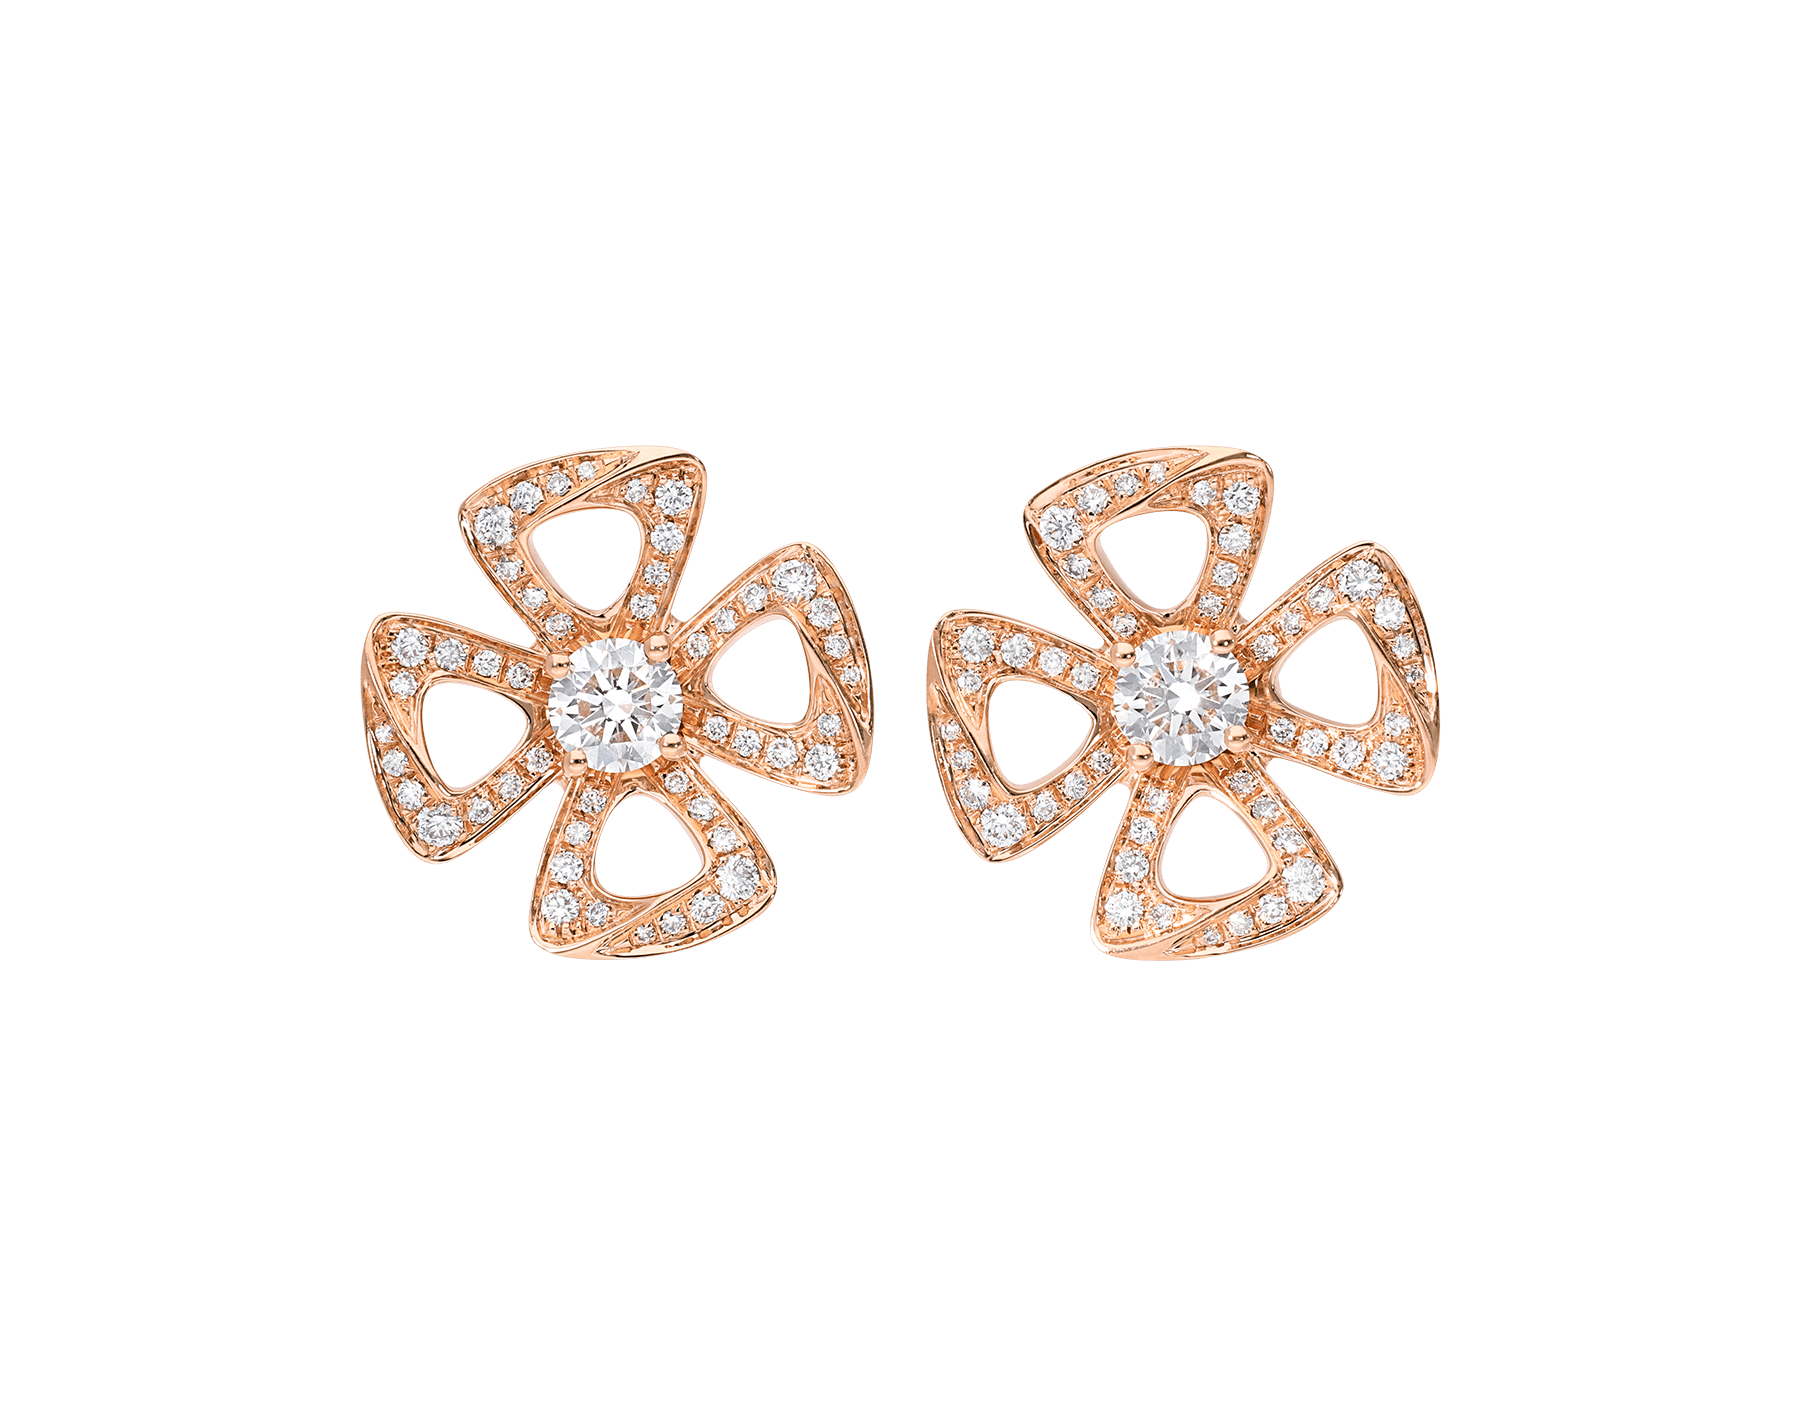 Fiorever 18 kt rose gold earrings, set with two central diamonds and pavé diamonds. 355887 image 1